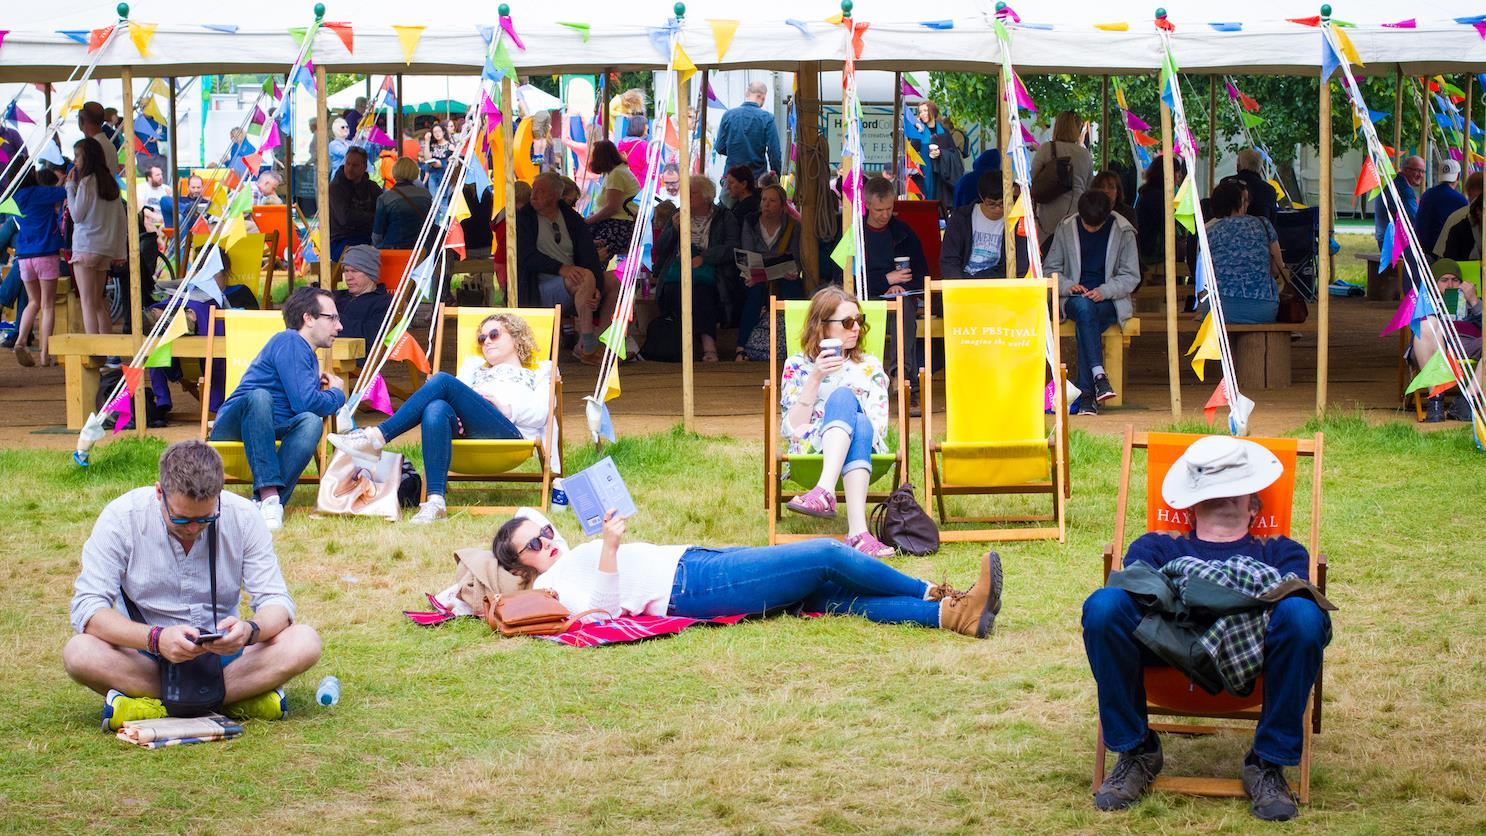 Reading on grass at Hay Festival